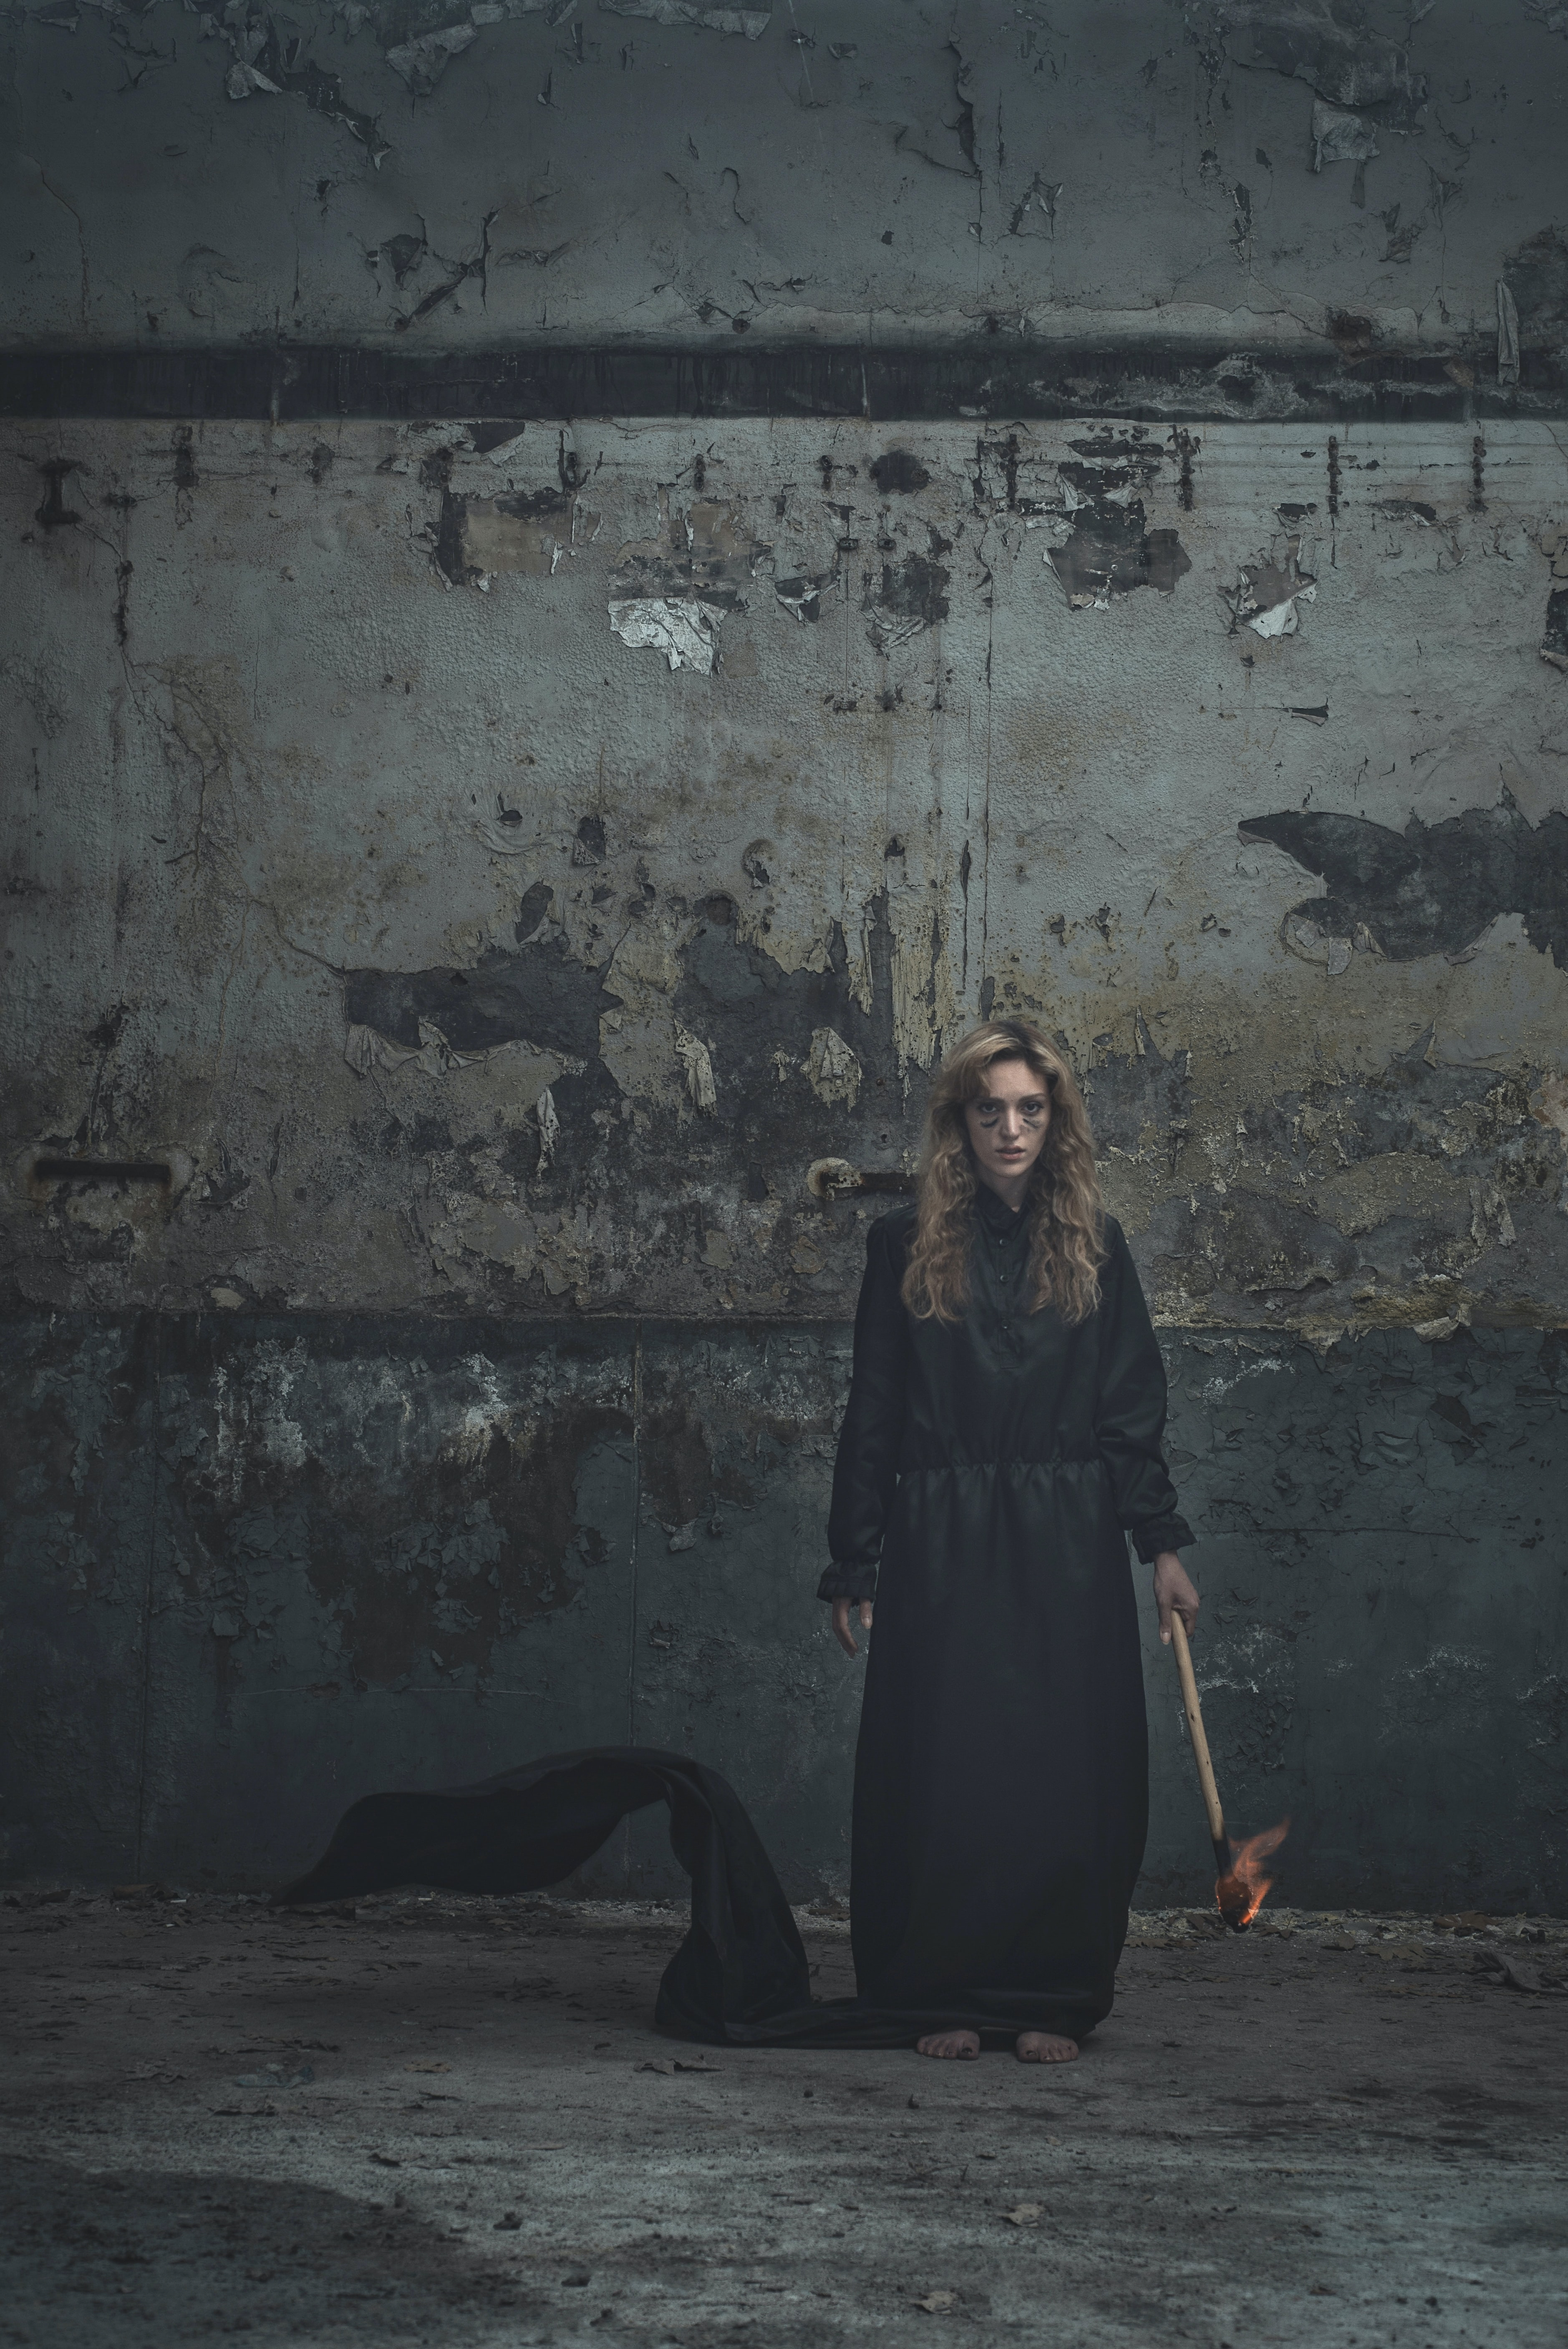 A woman in a long black dress holds a lit torch beside a dirty gray wall